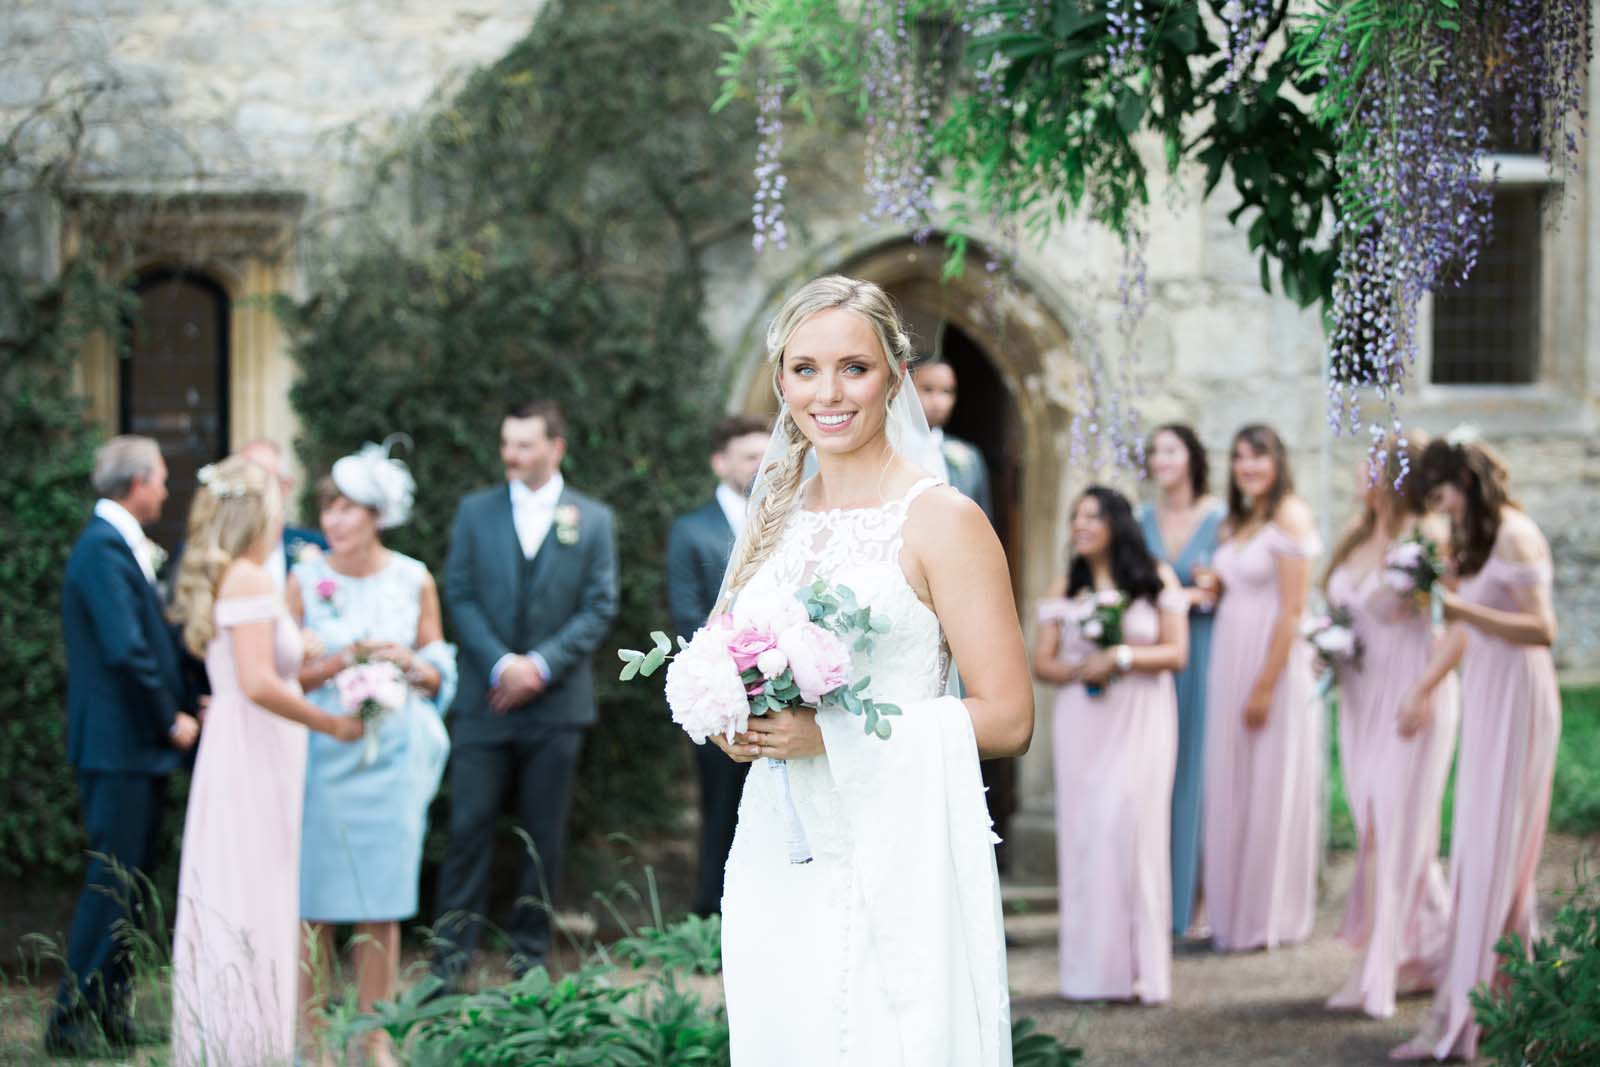 Notley Abbey wedding in Bucks with the bride standing under wisteria